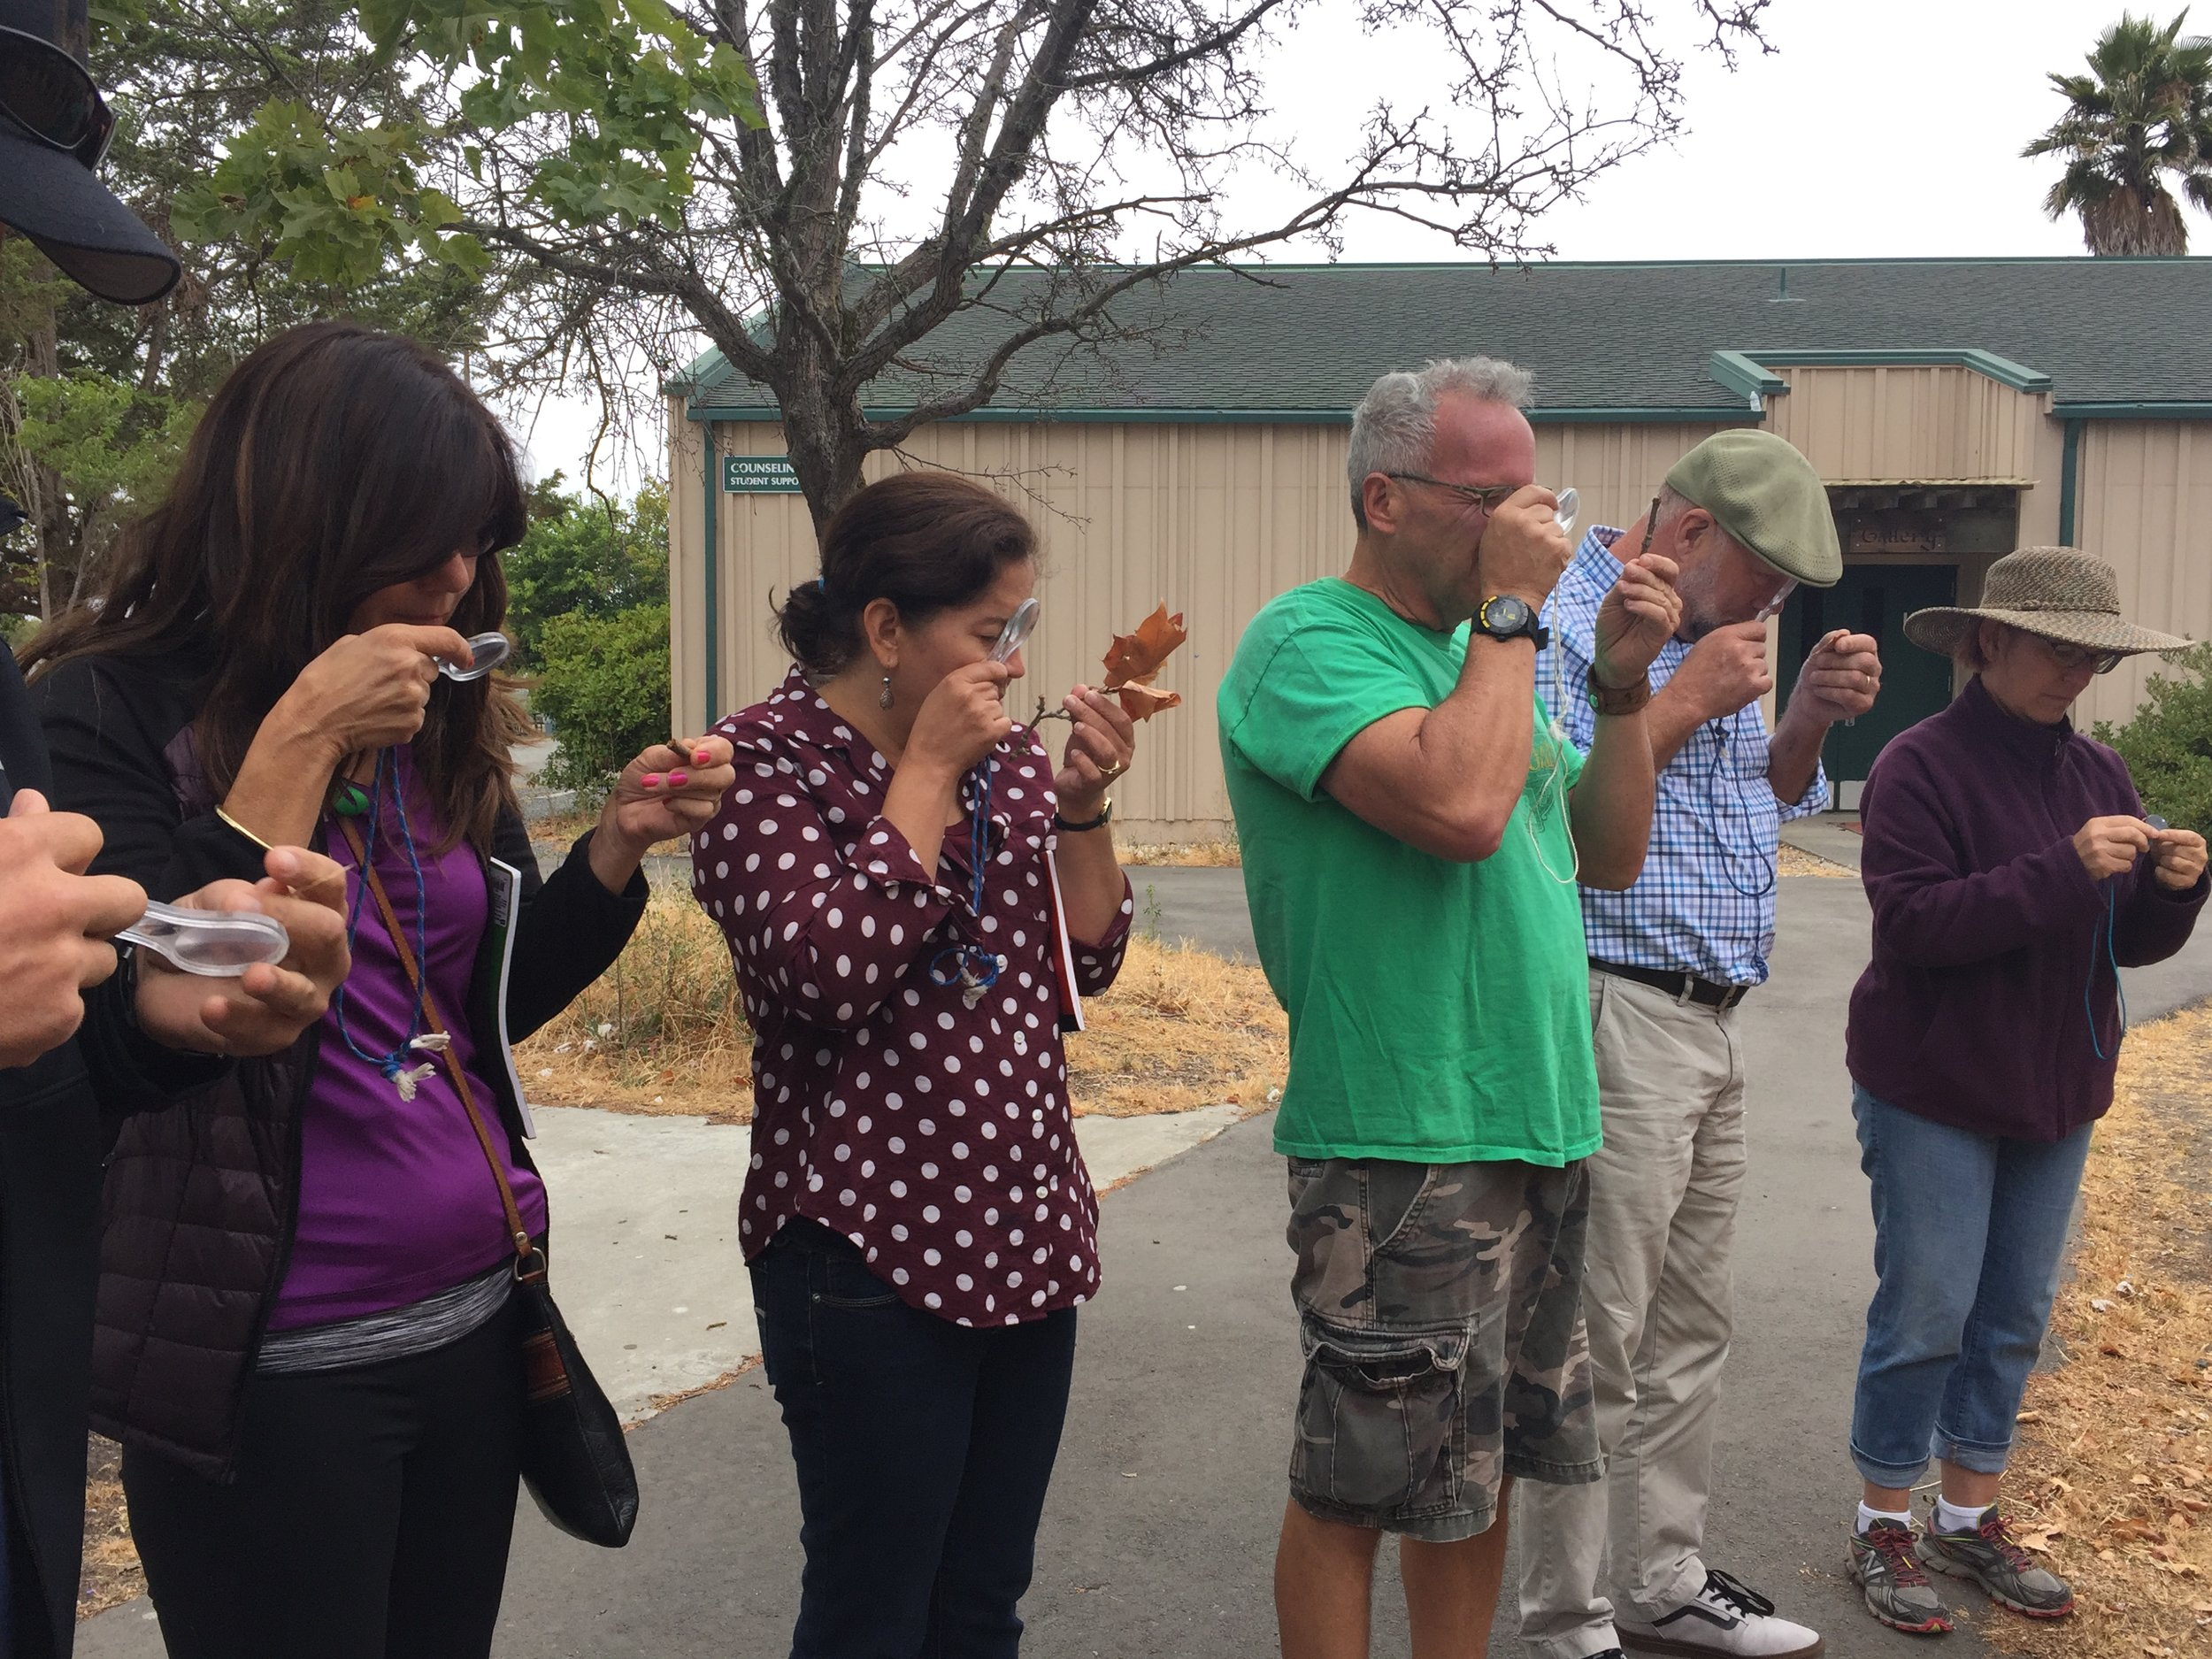 Attendees at the 2016 BEETLES training closely examine leaves as part of an outdoor education exercise.